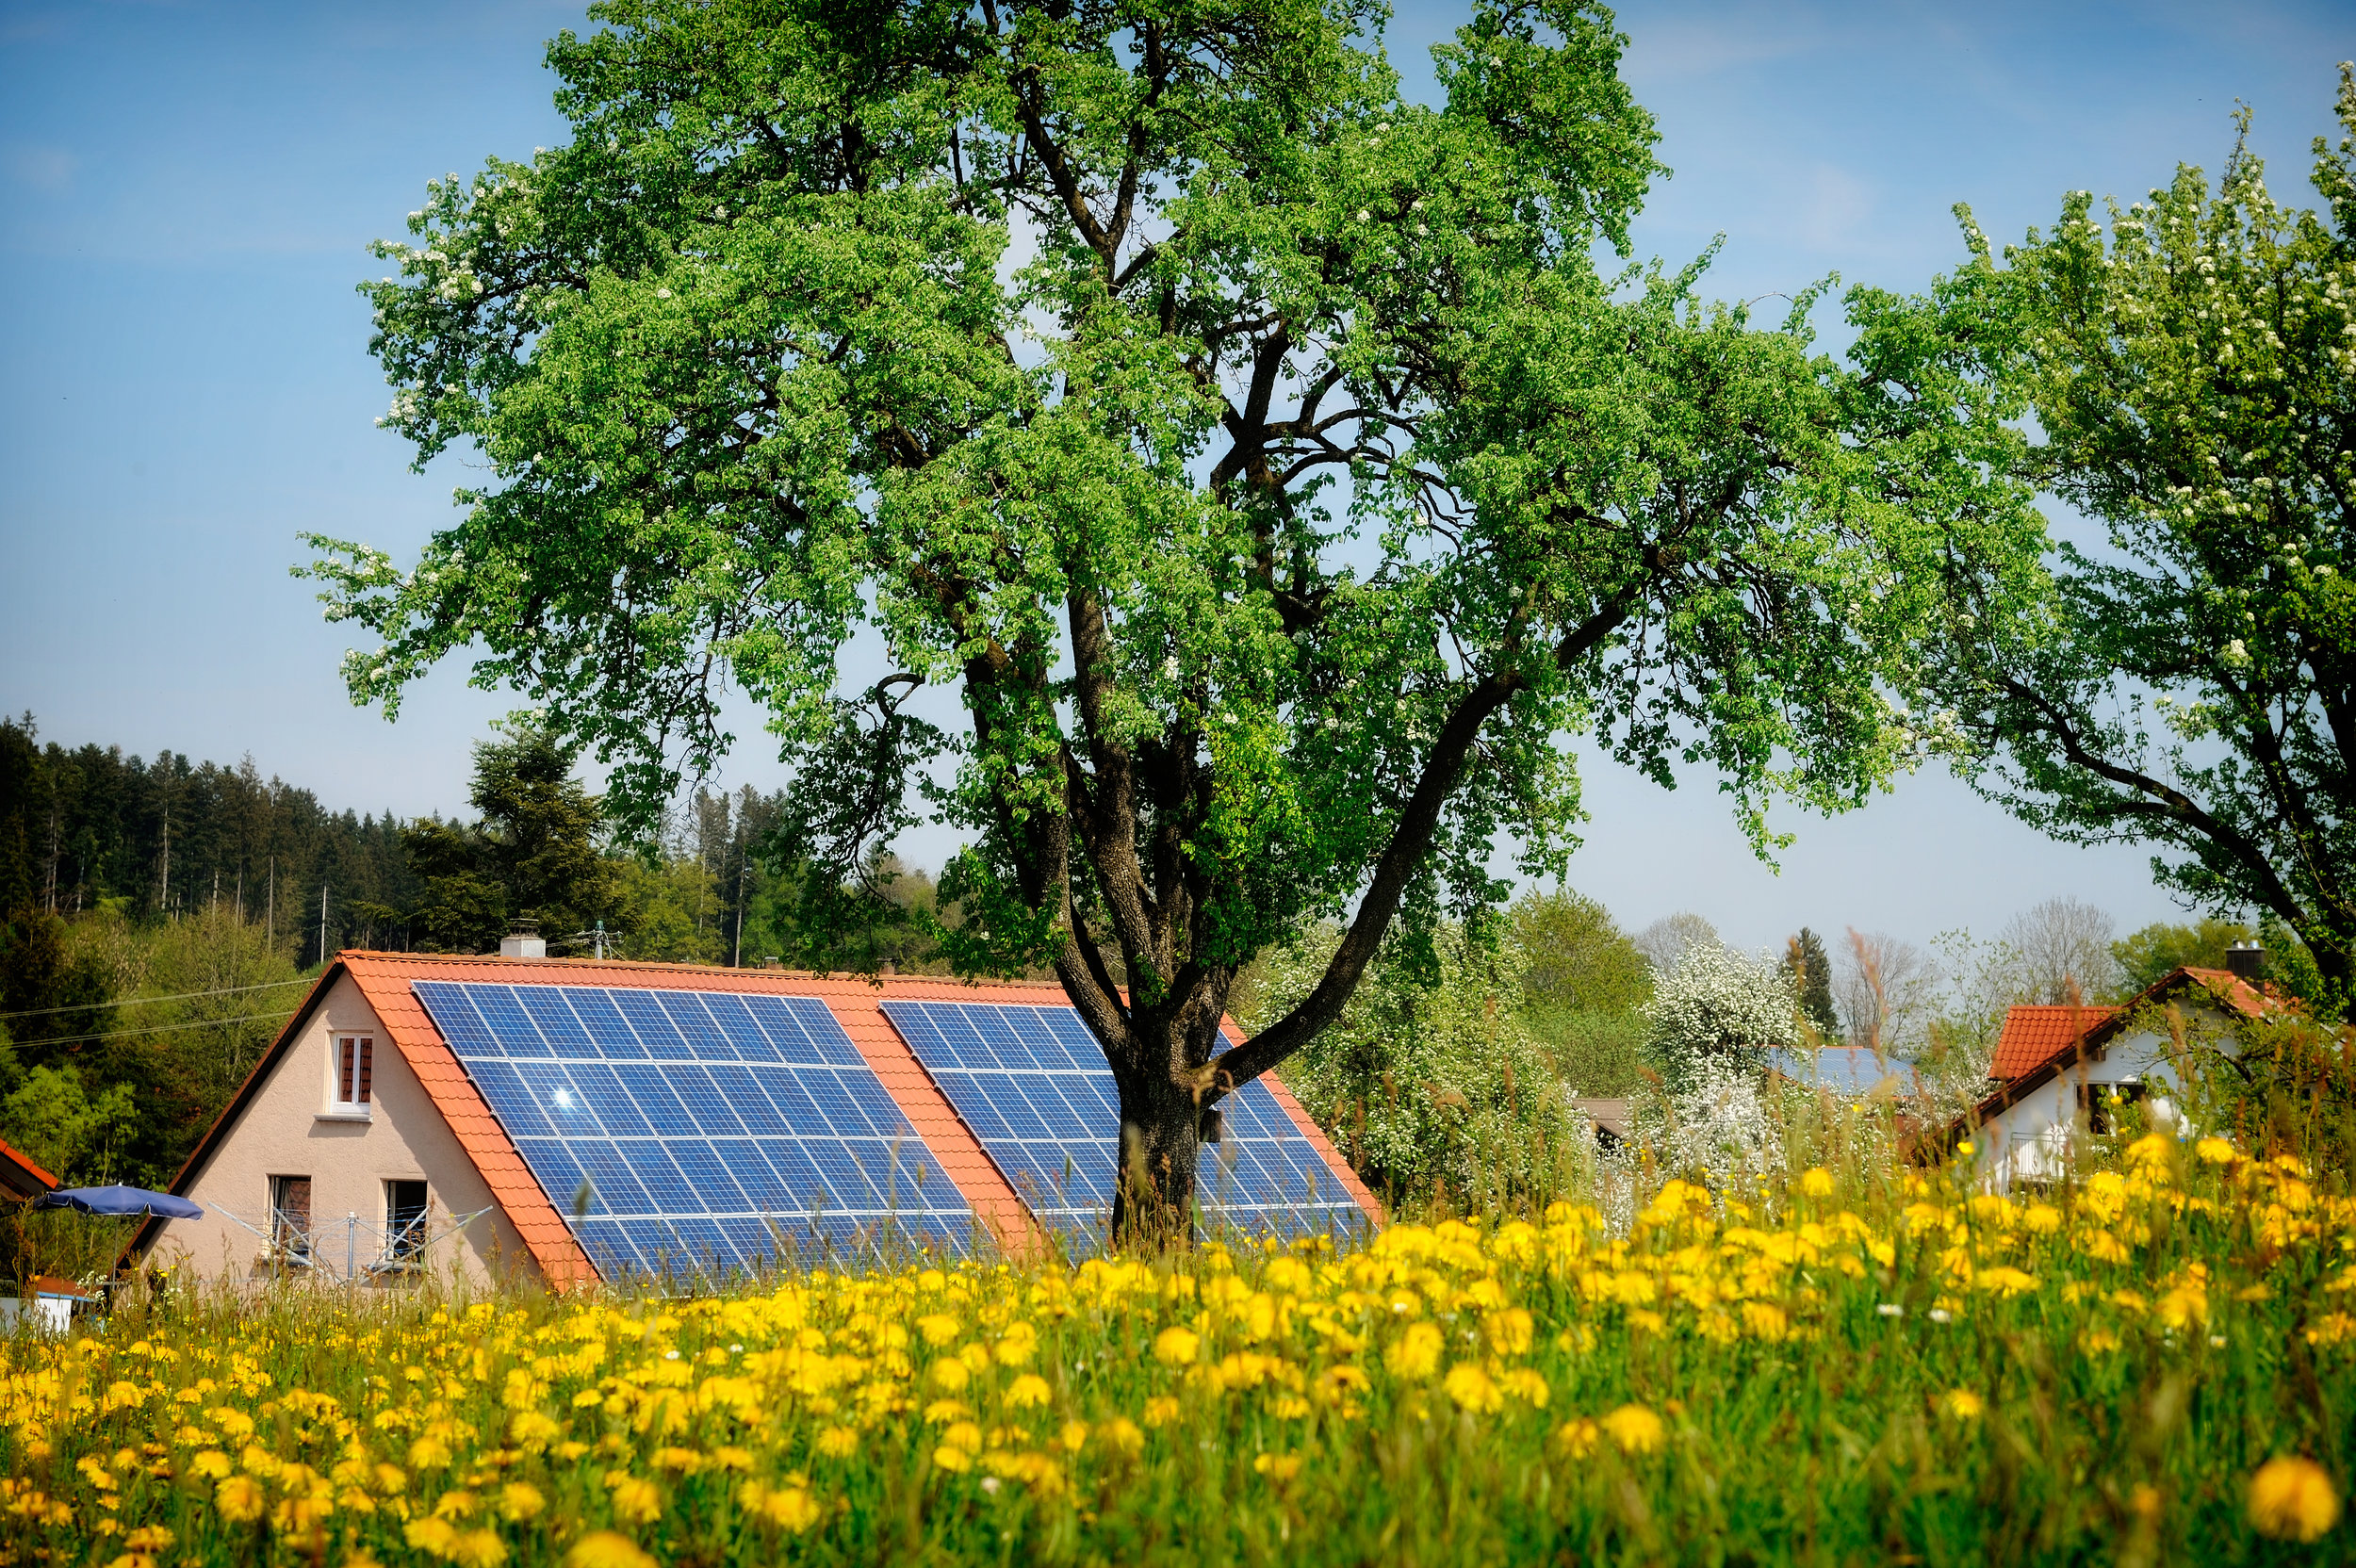 solar-panel-on-a-red-roof-304512014.jpg